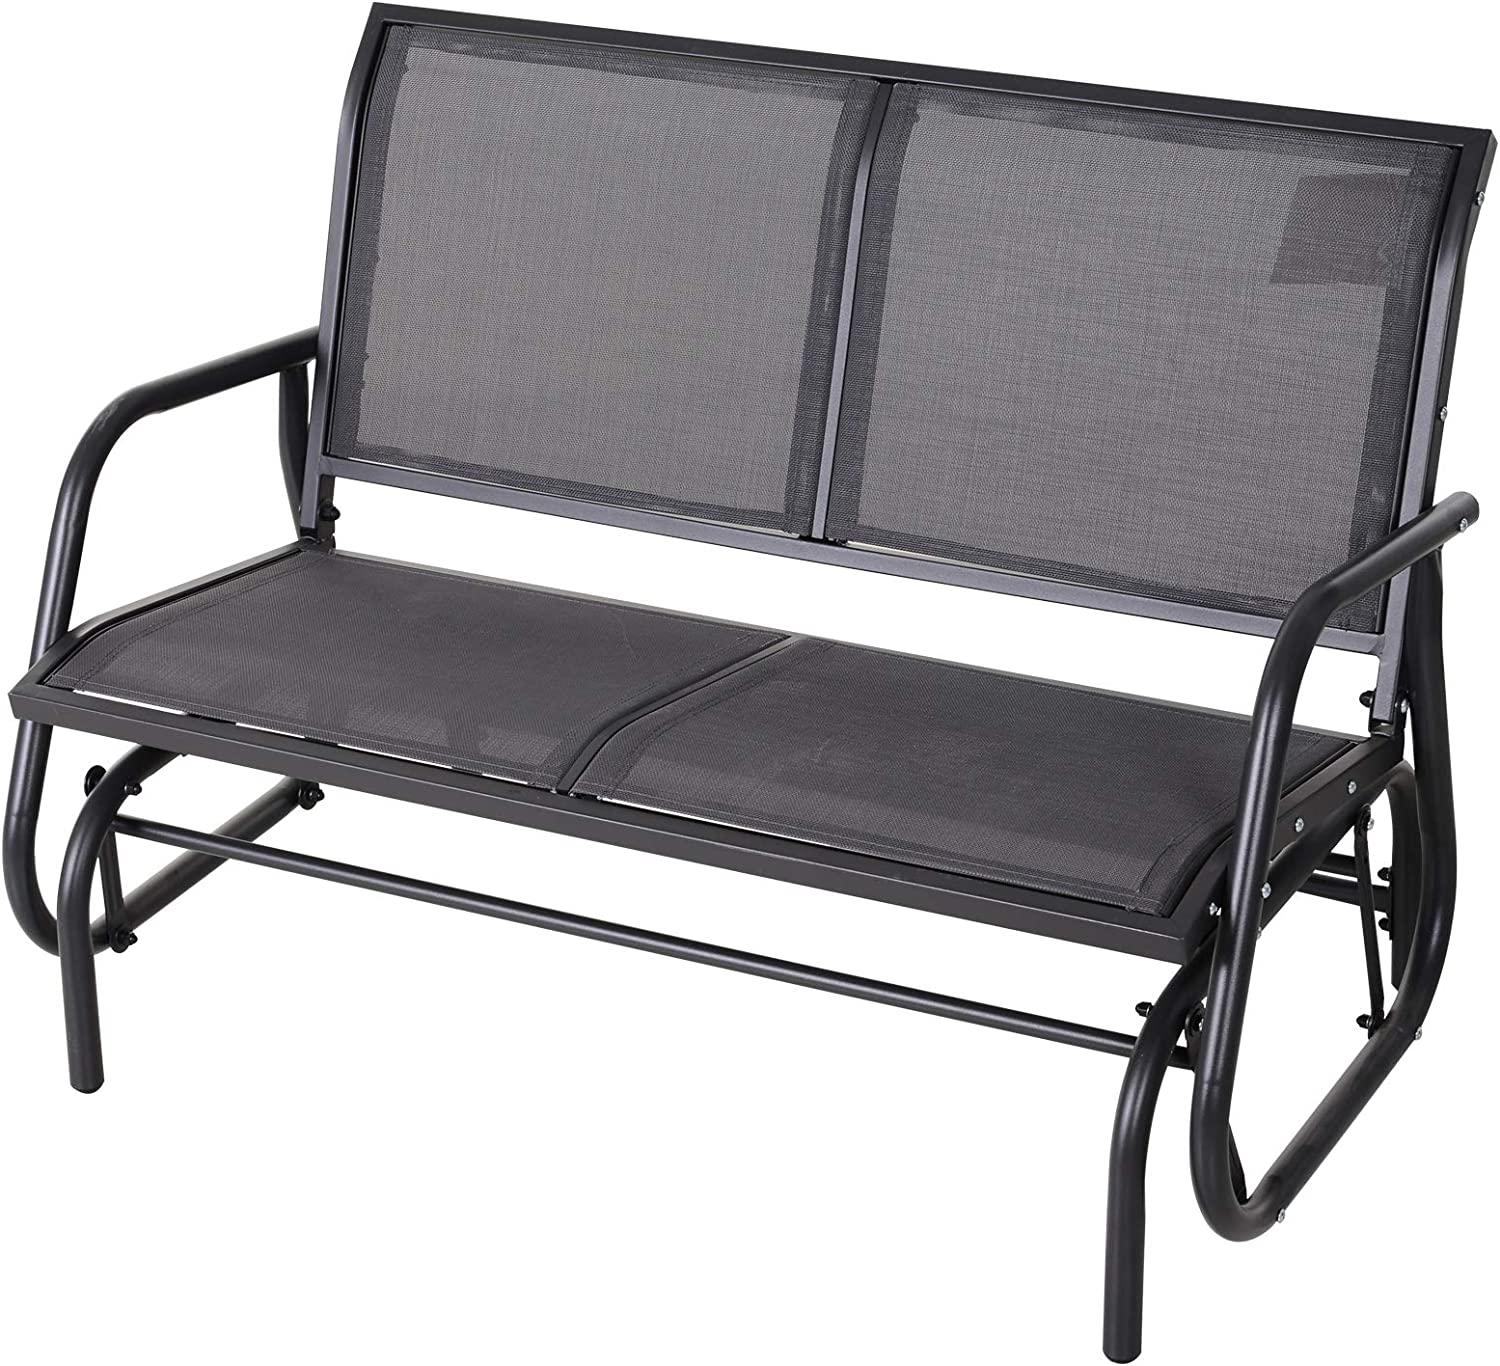 Outsunny 2-Person Outdoor Glider Bench Double Rocking Chair Loveseat w/Armrest for Patio Garden Yard Porch Grey